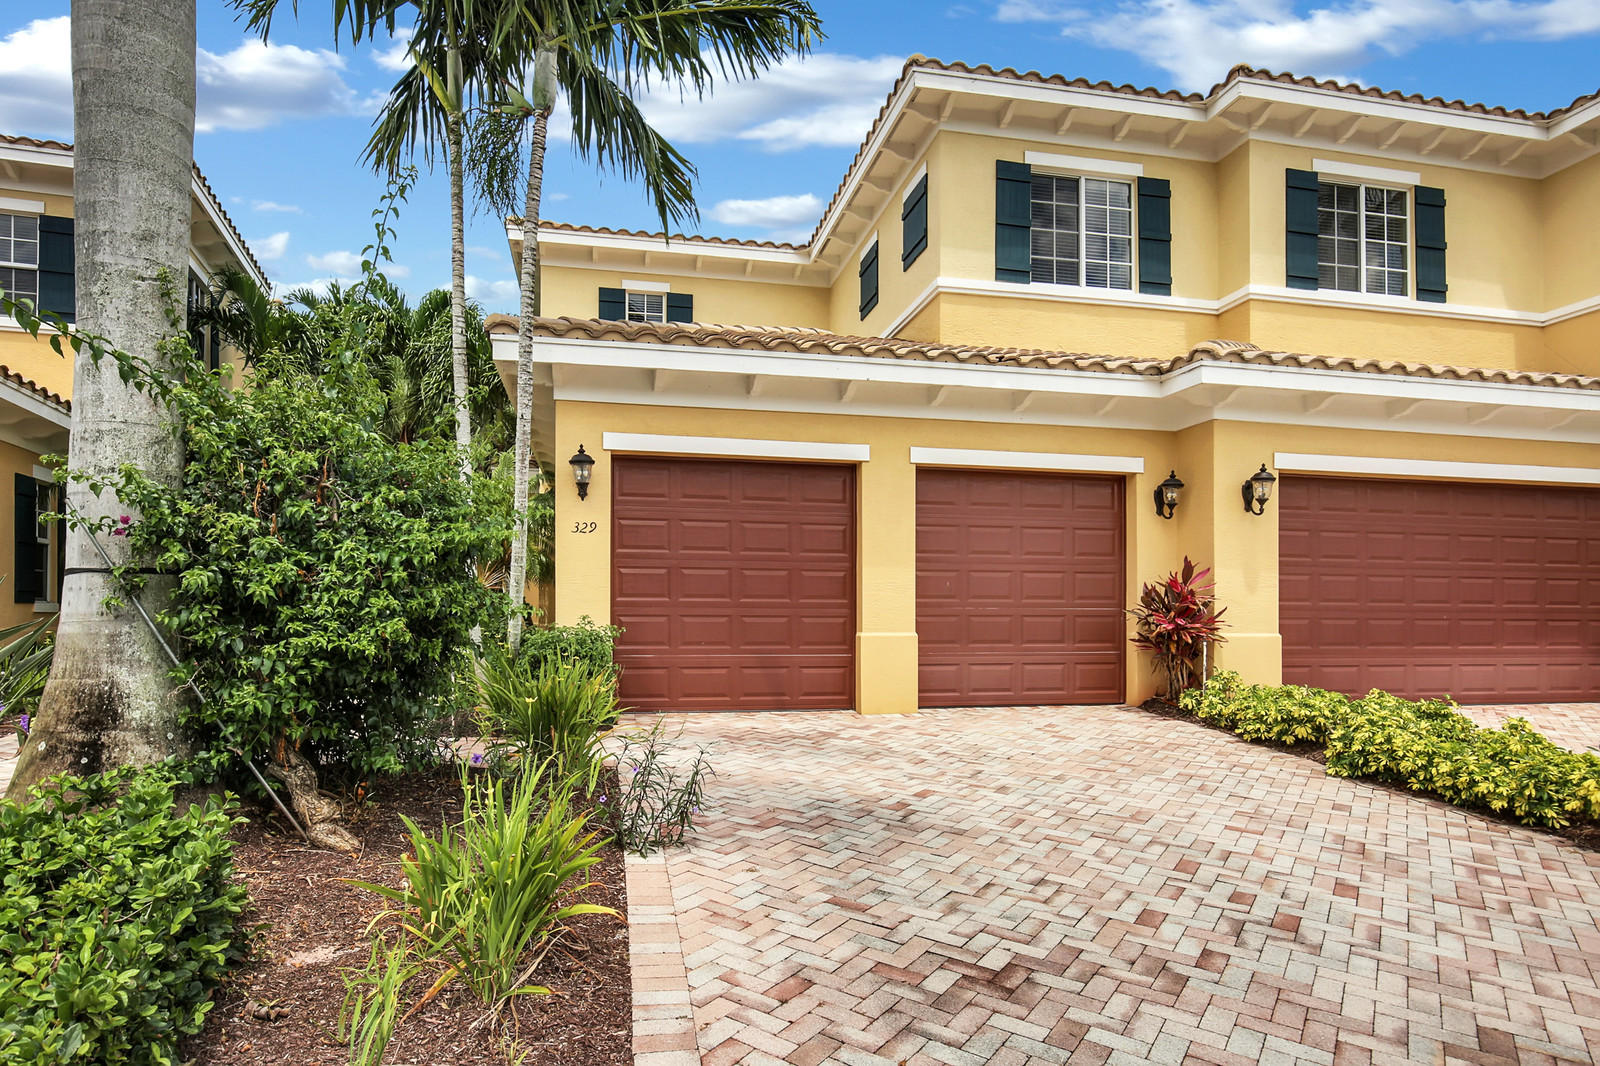 New Home for sale at 329 Chambord Terrace in Palm Beach Gardens